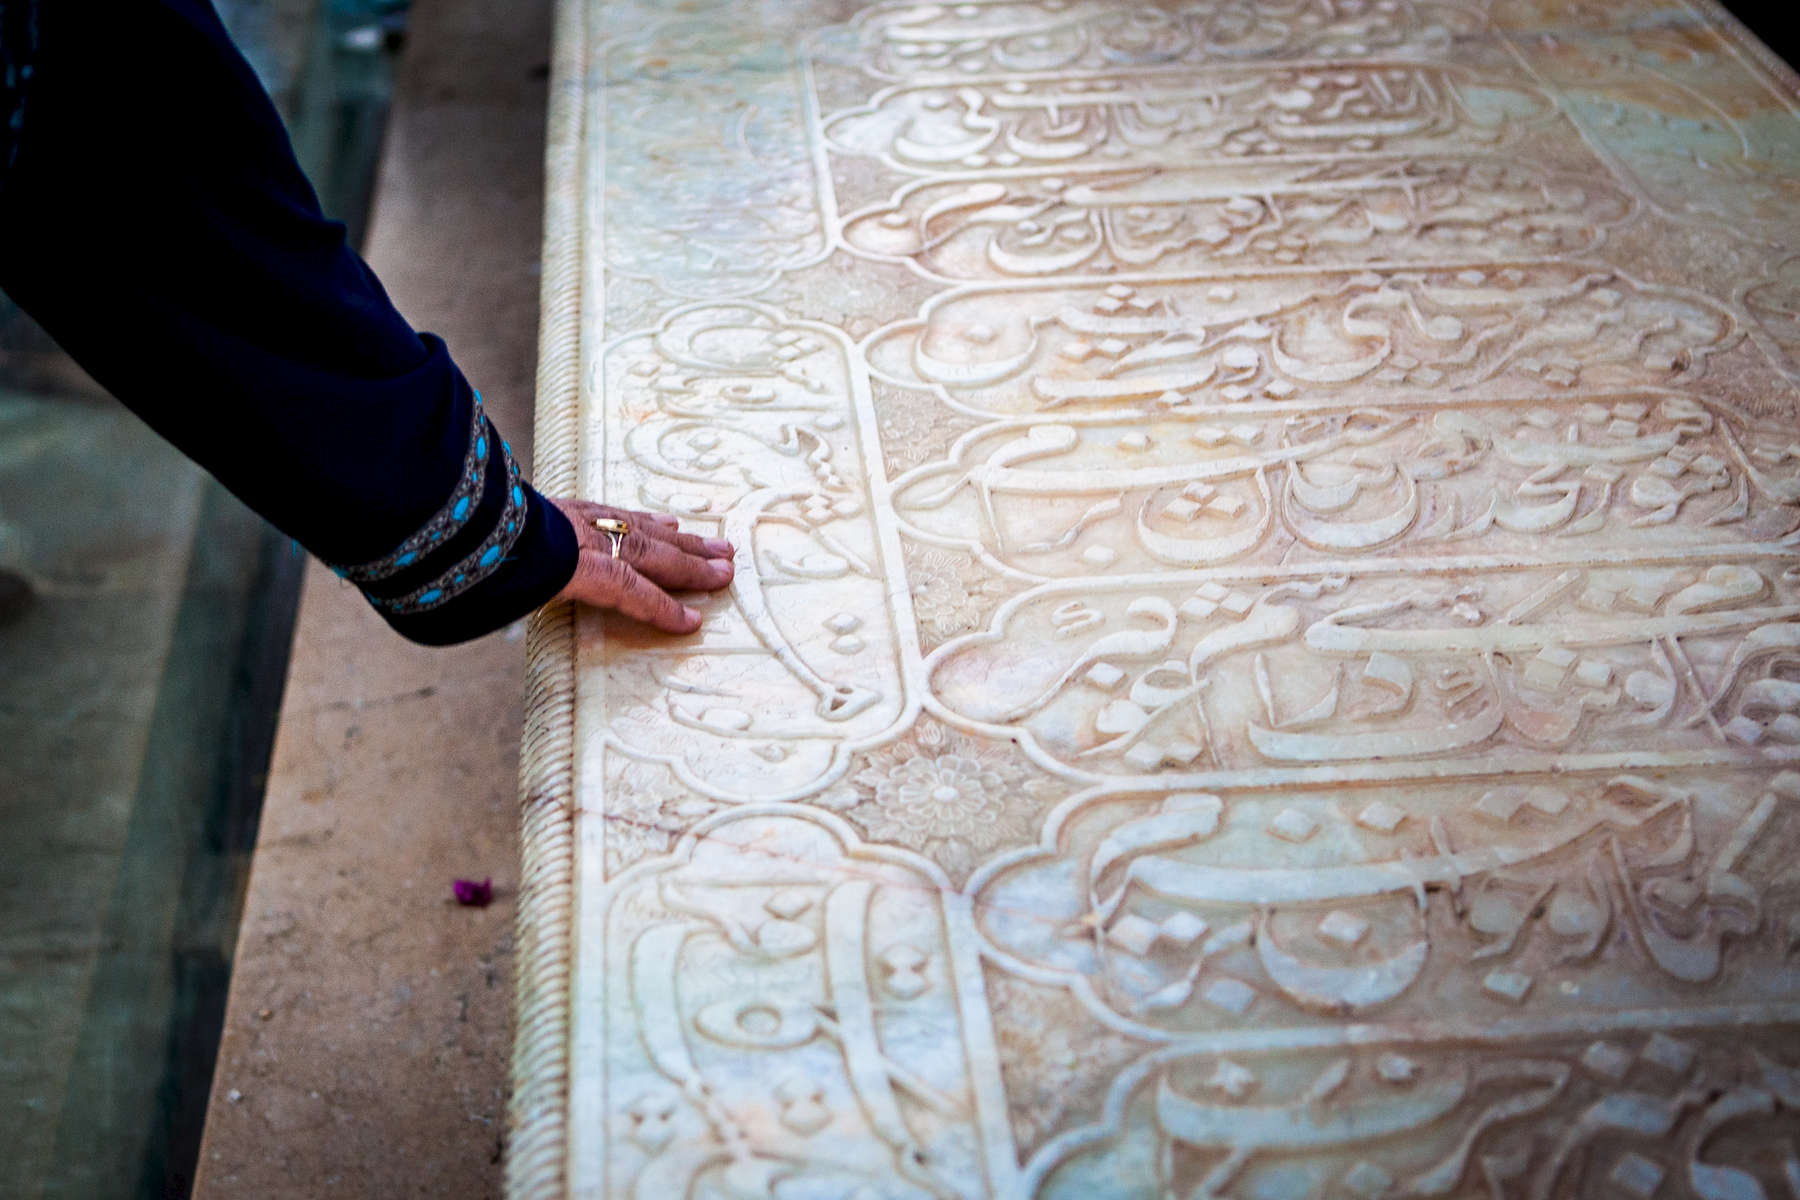 Seeking Blessings at Hafez's tomb (14th century). Shiraz.Persian poets are so venerated that Iranians visit their graves in the same way they make pilgrimages to the resting places of Sufi saints and other important religious figures.